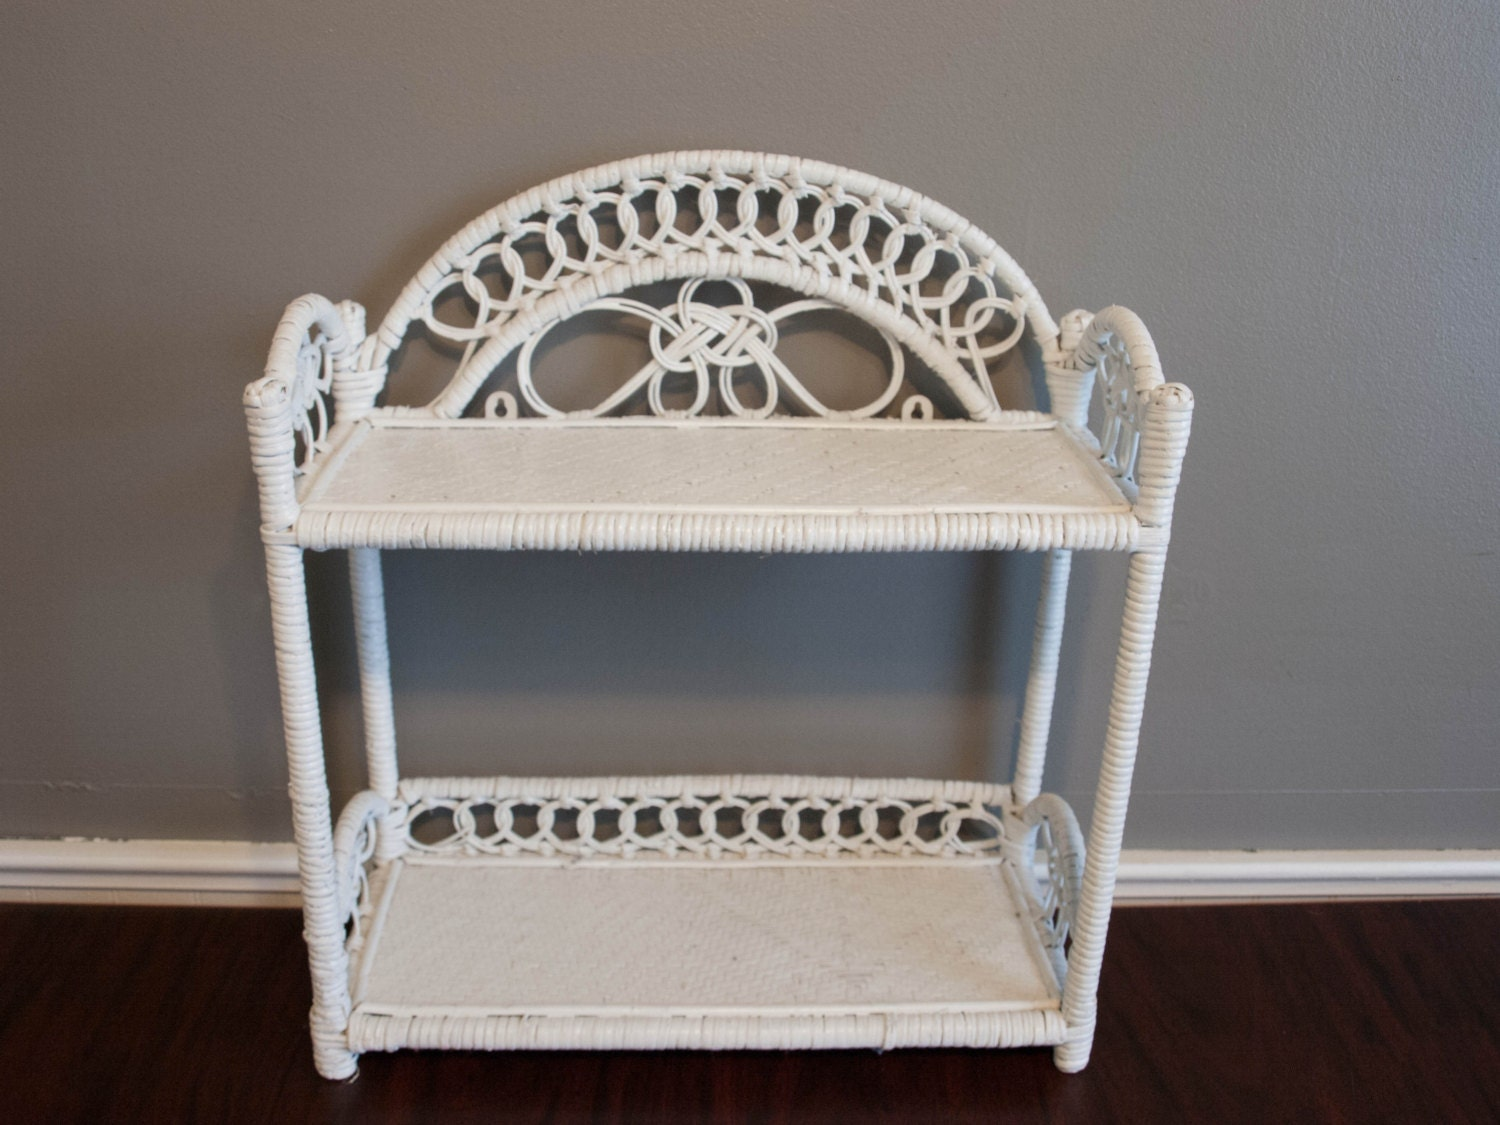 white wicker shelf wicker shelf bathroom shelf by